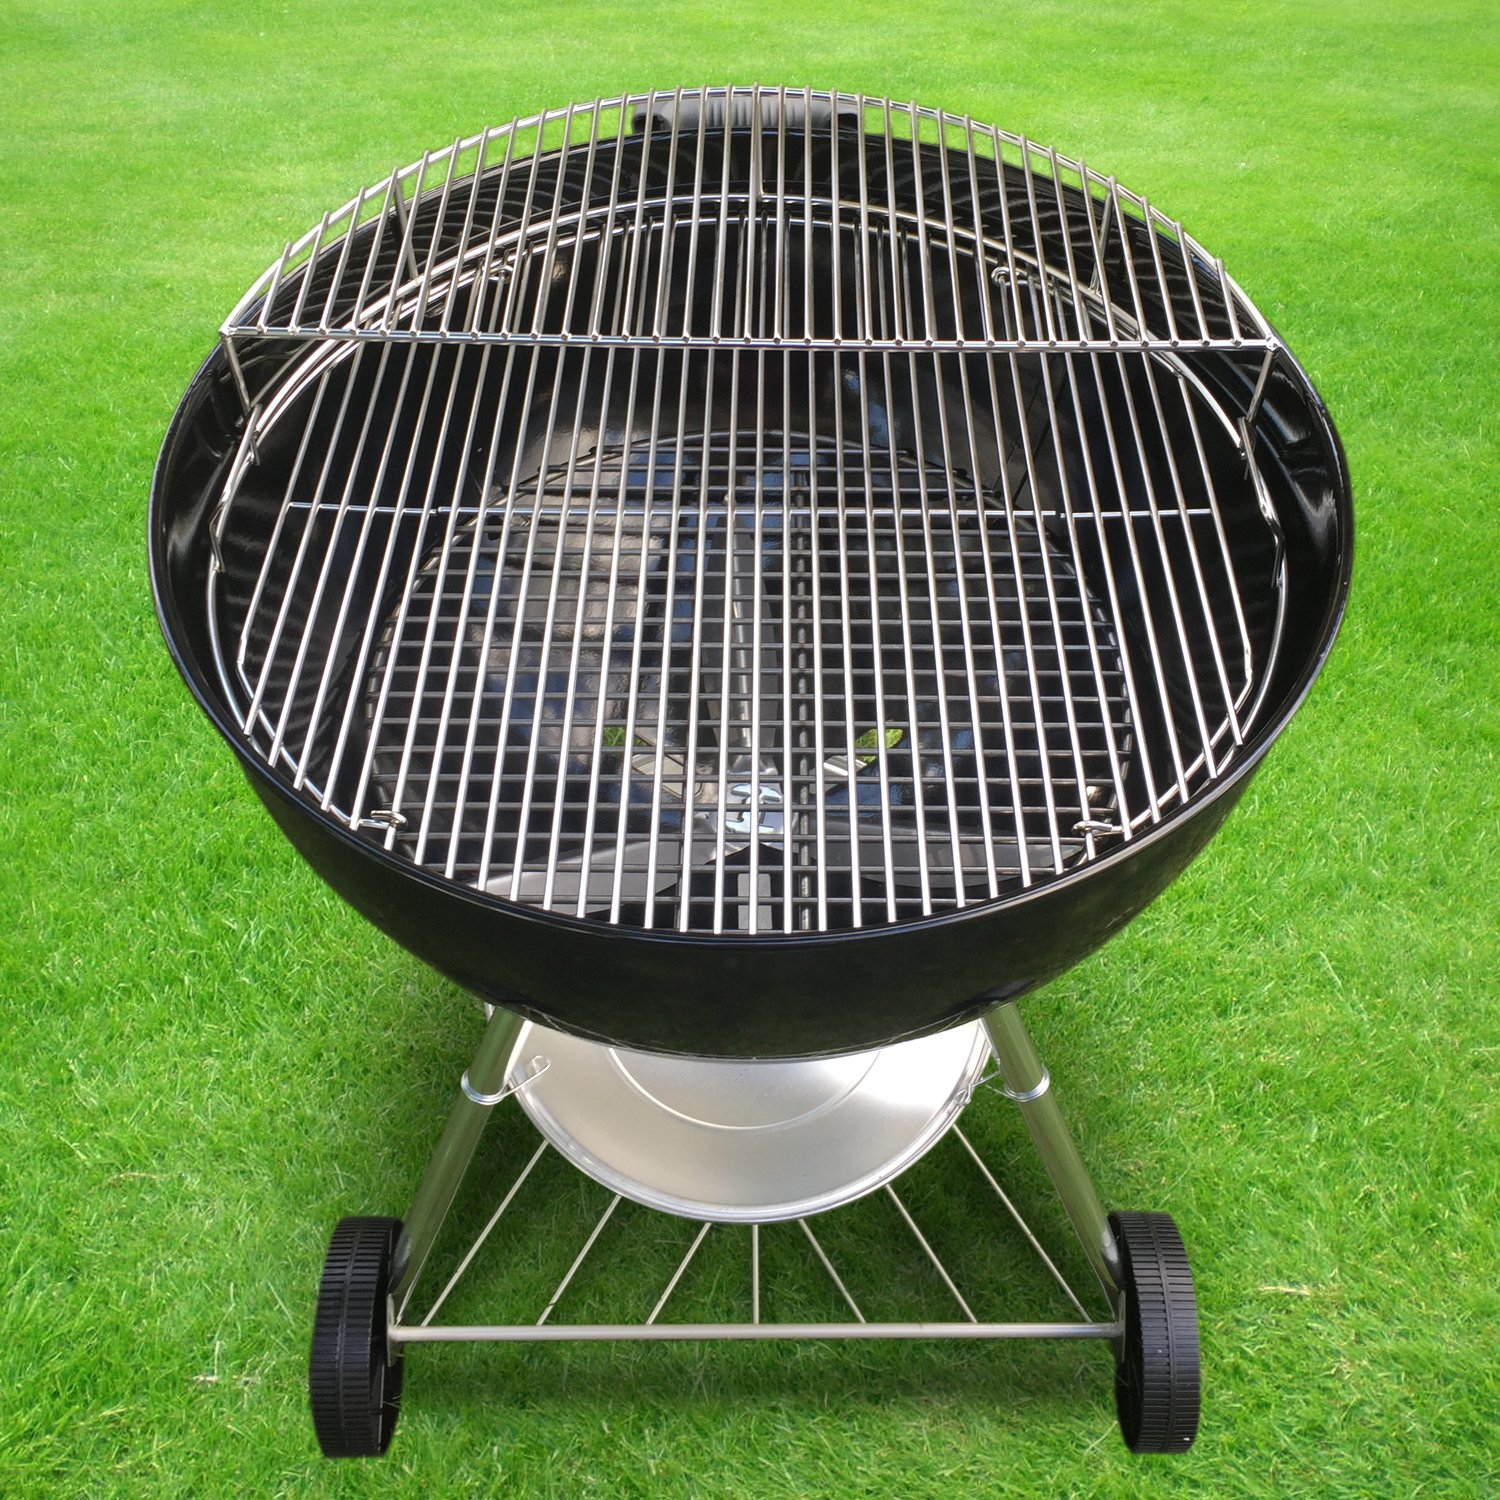 rack grill open searing and grate sansaire product tray partially kit